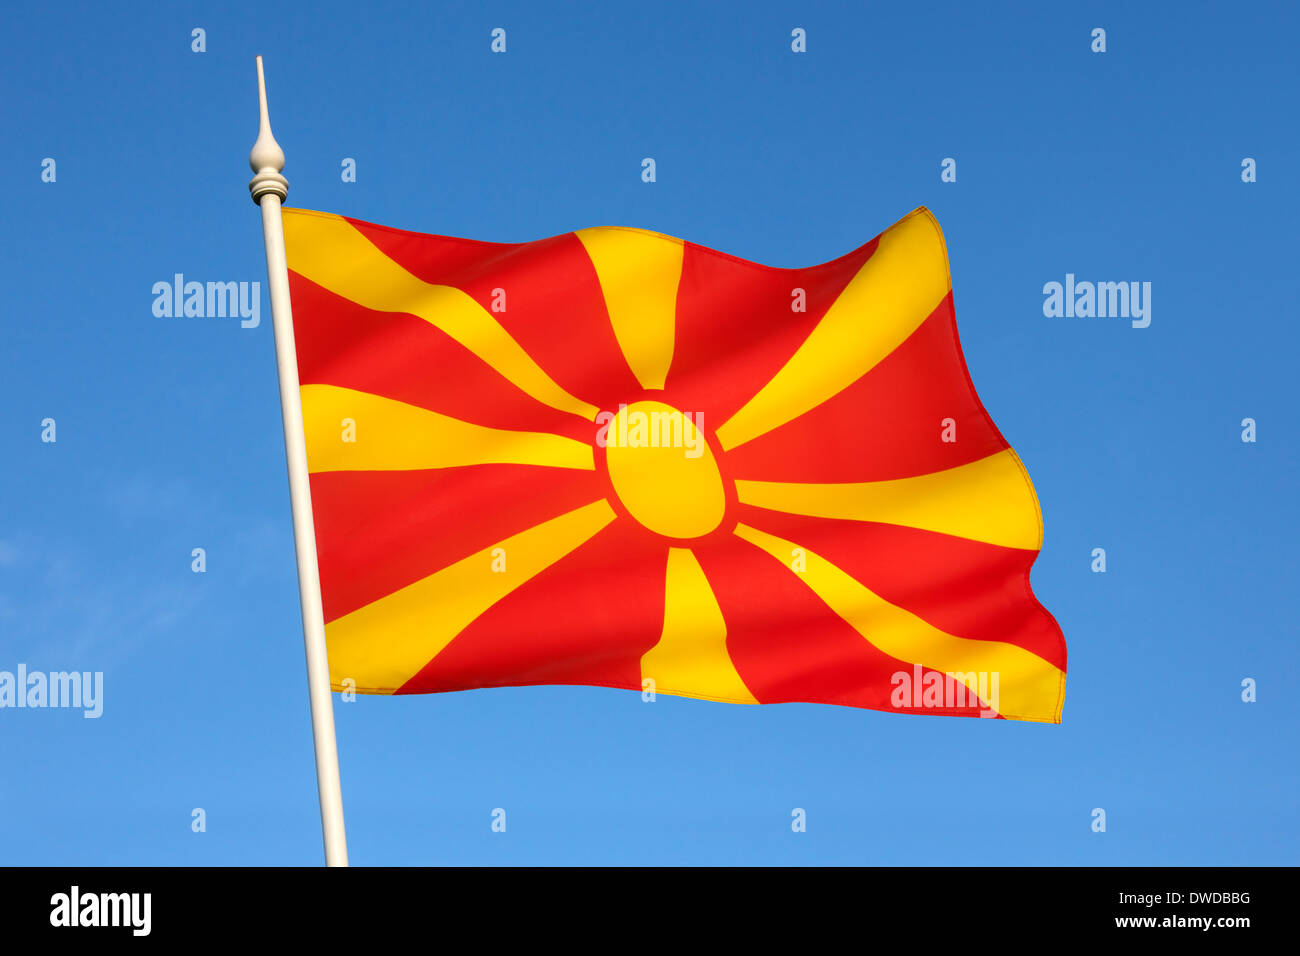 The national flag of the Republic of Macedonia. - Stock Image